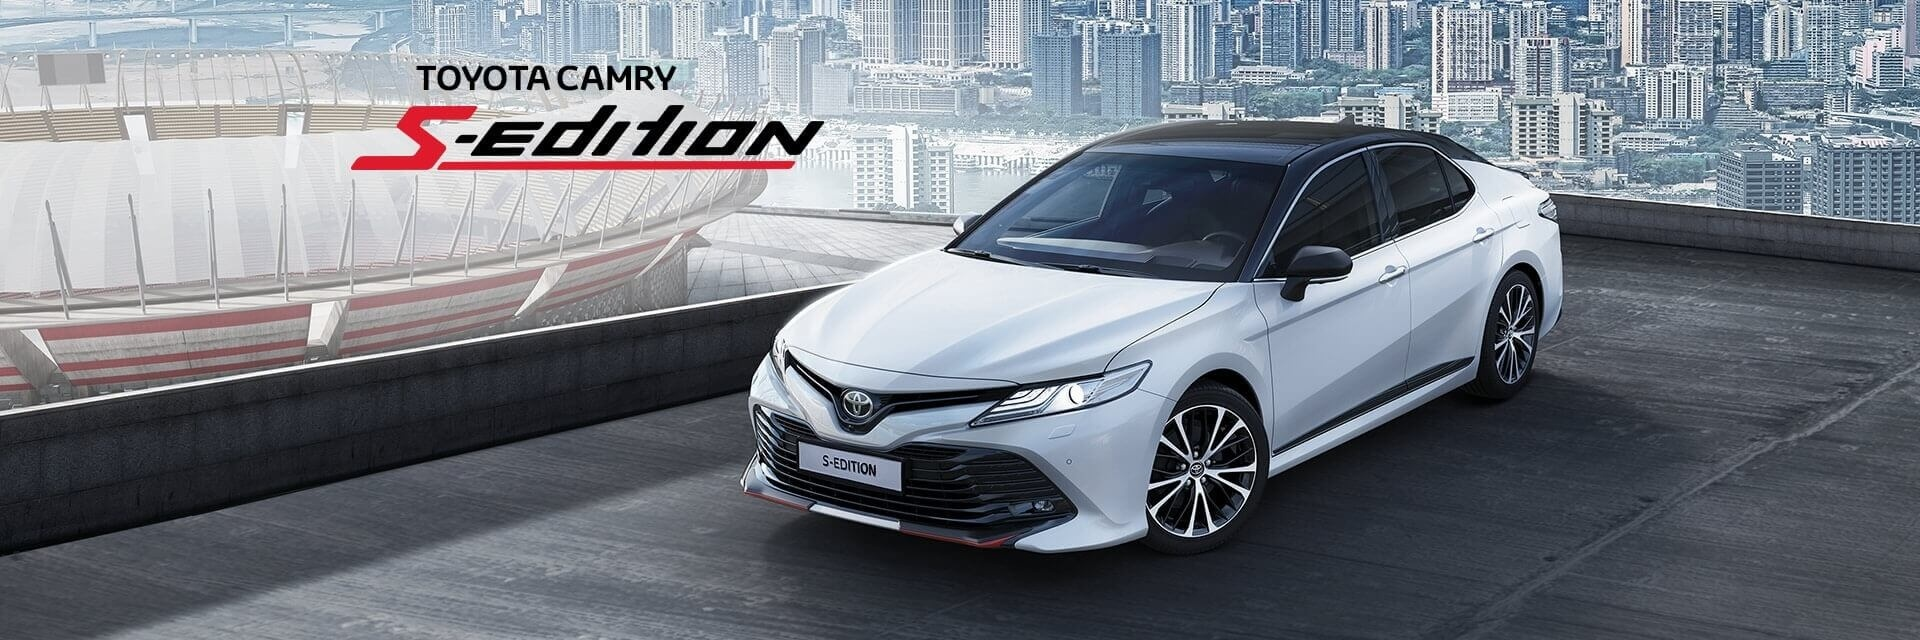 Camry S-Edition - am